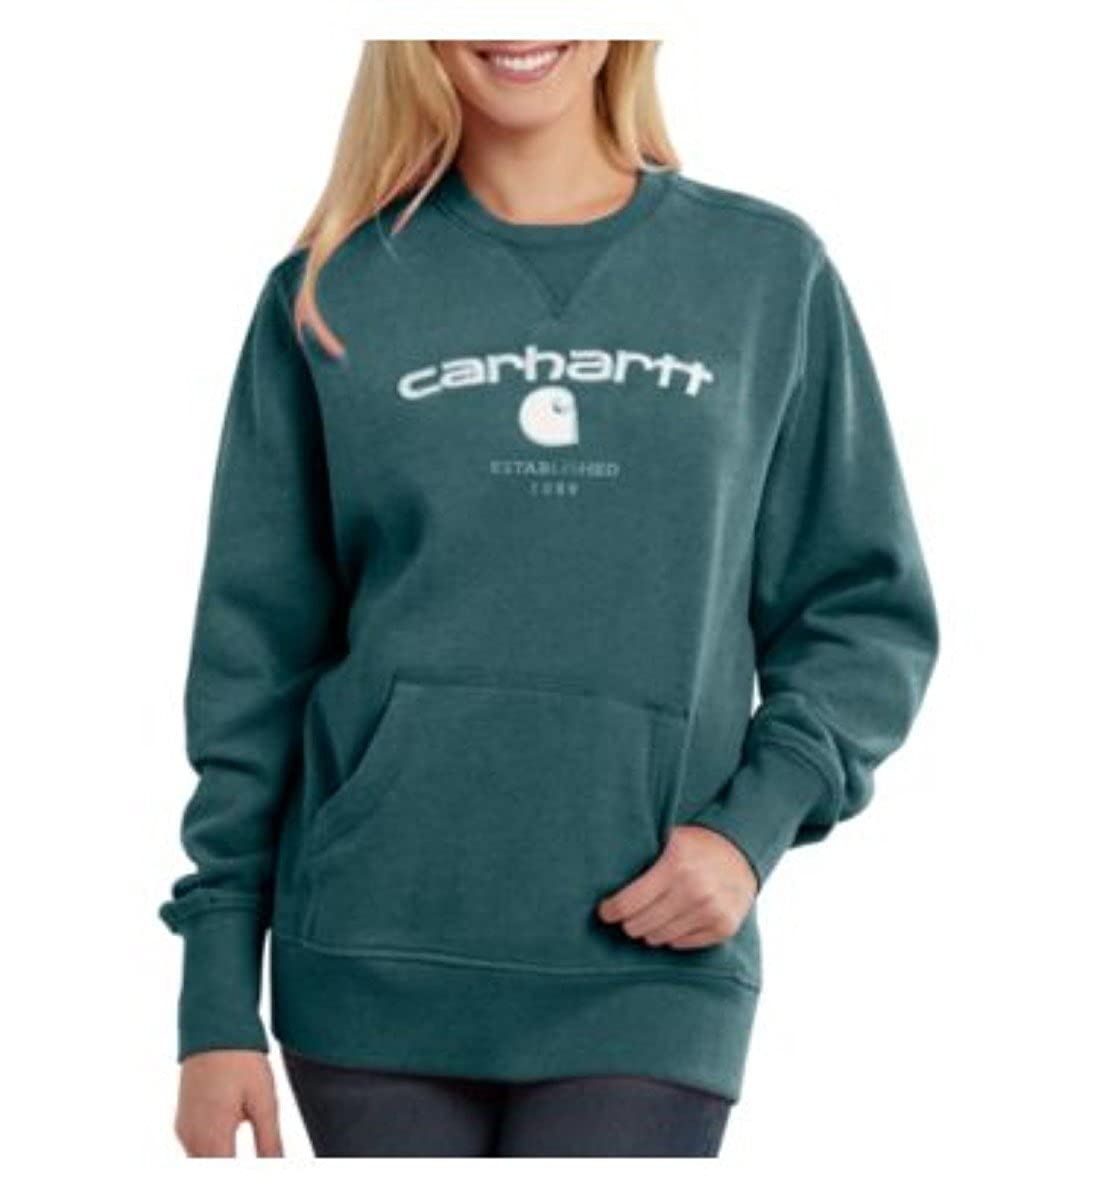 Amazon.com: Carhartt Women s Burket Graphic sudadera: Clothing